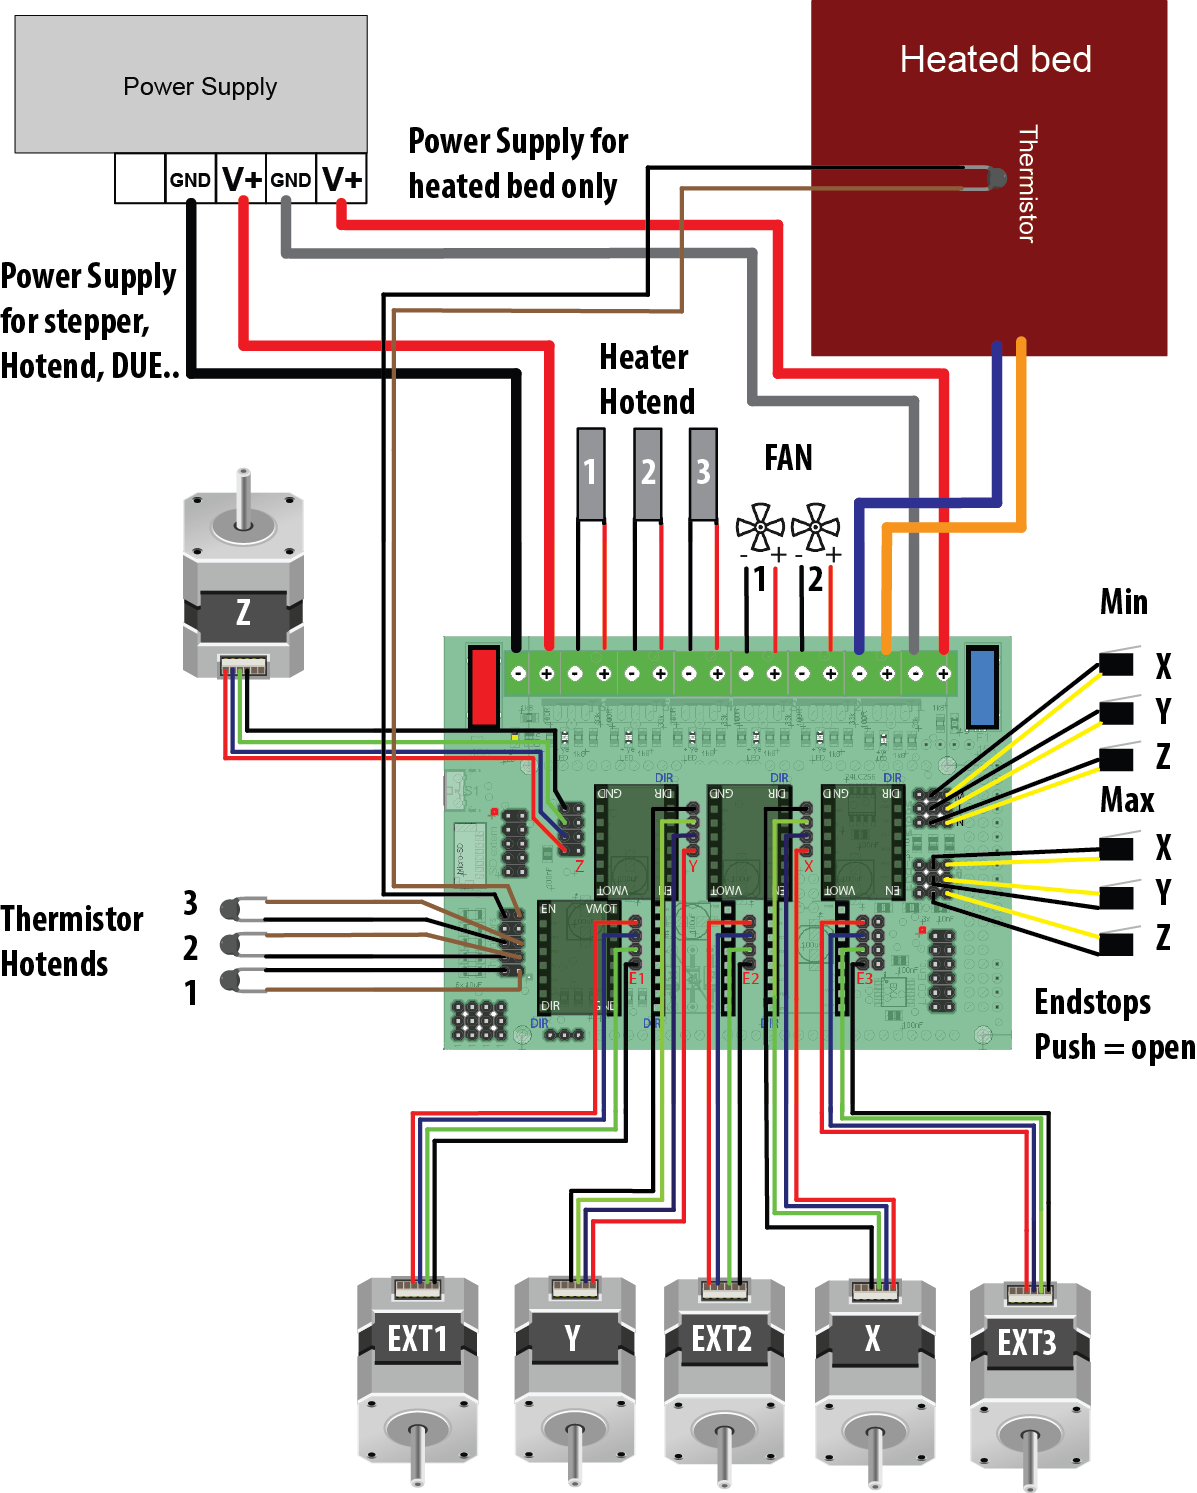 RADDS_Wiring radds ak eric Inductive Sensor Schematic at gsmportal.co